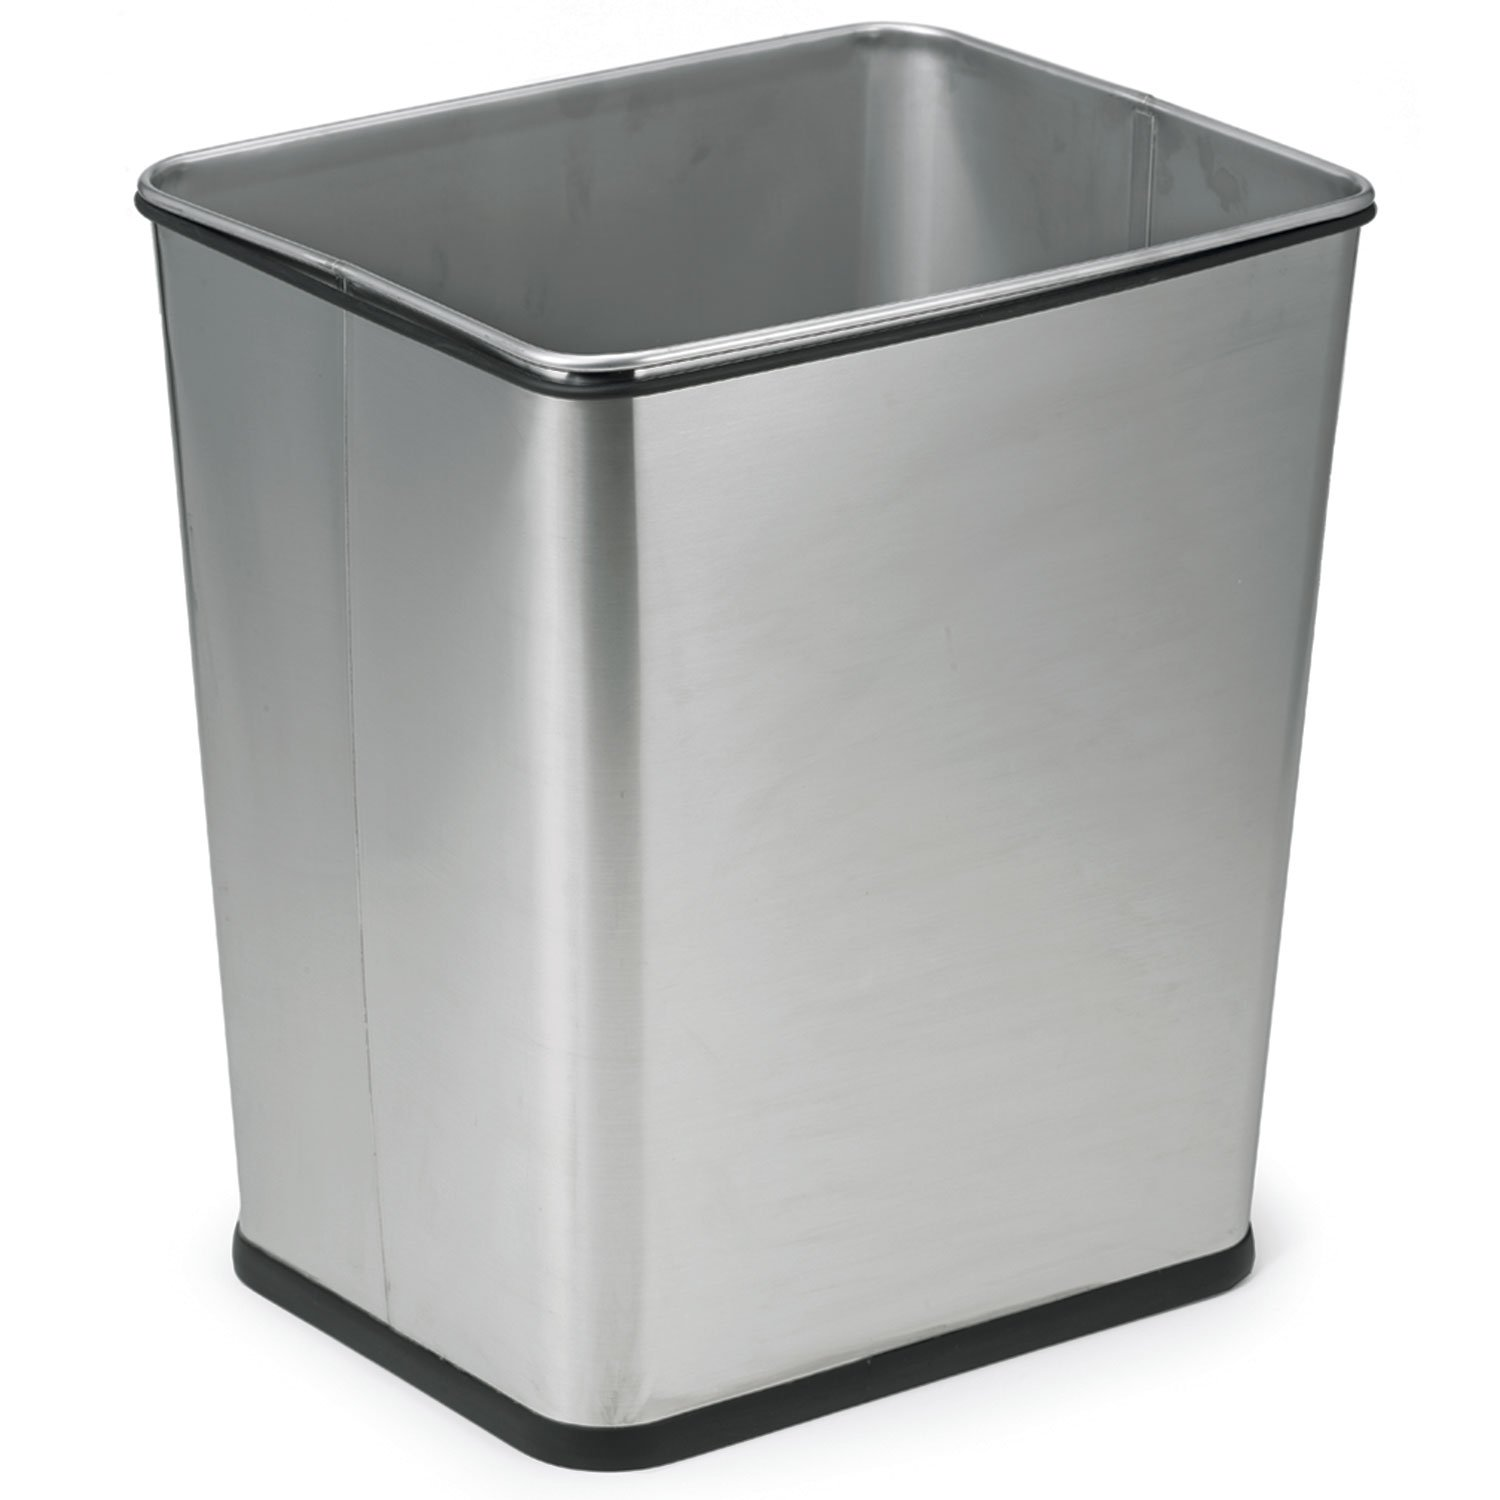 Polder Trash Can - 7 gallon and fits under the counter - Stylish Brushed Stainless Steel